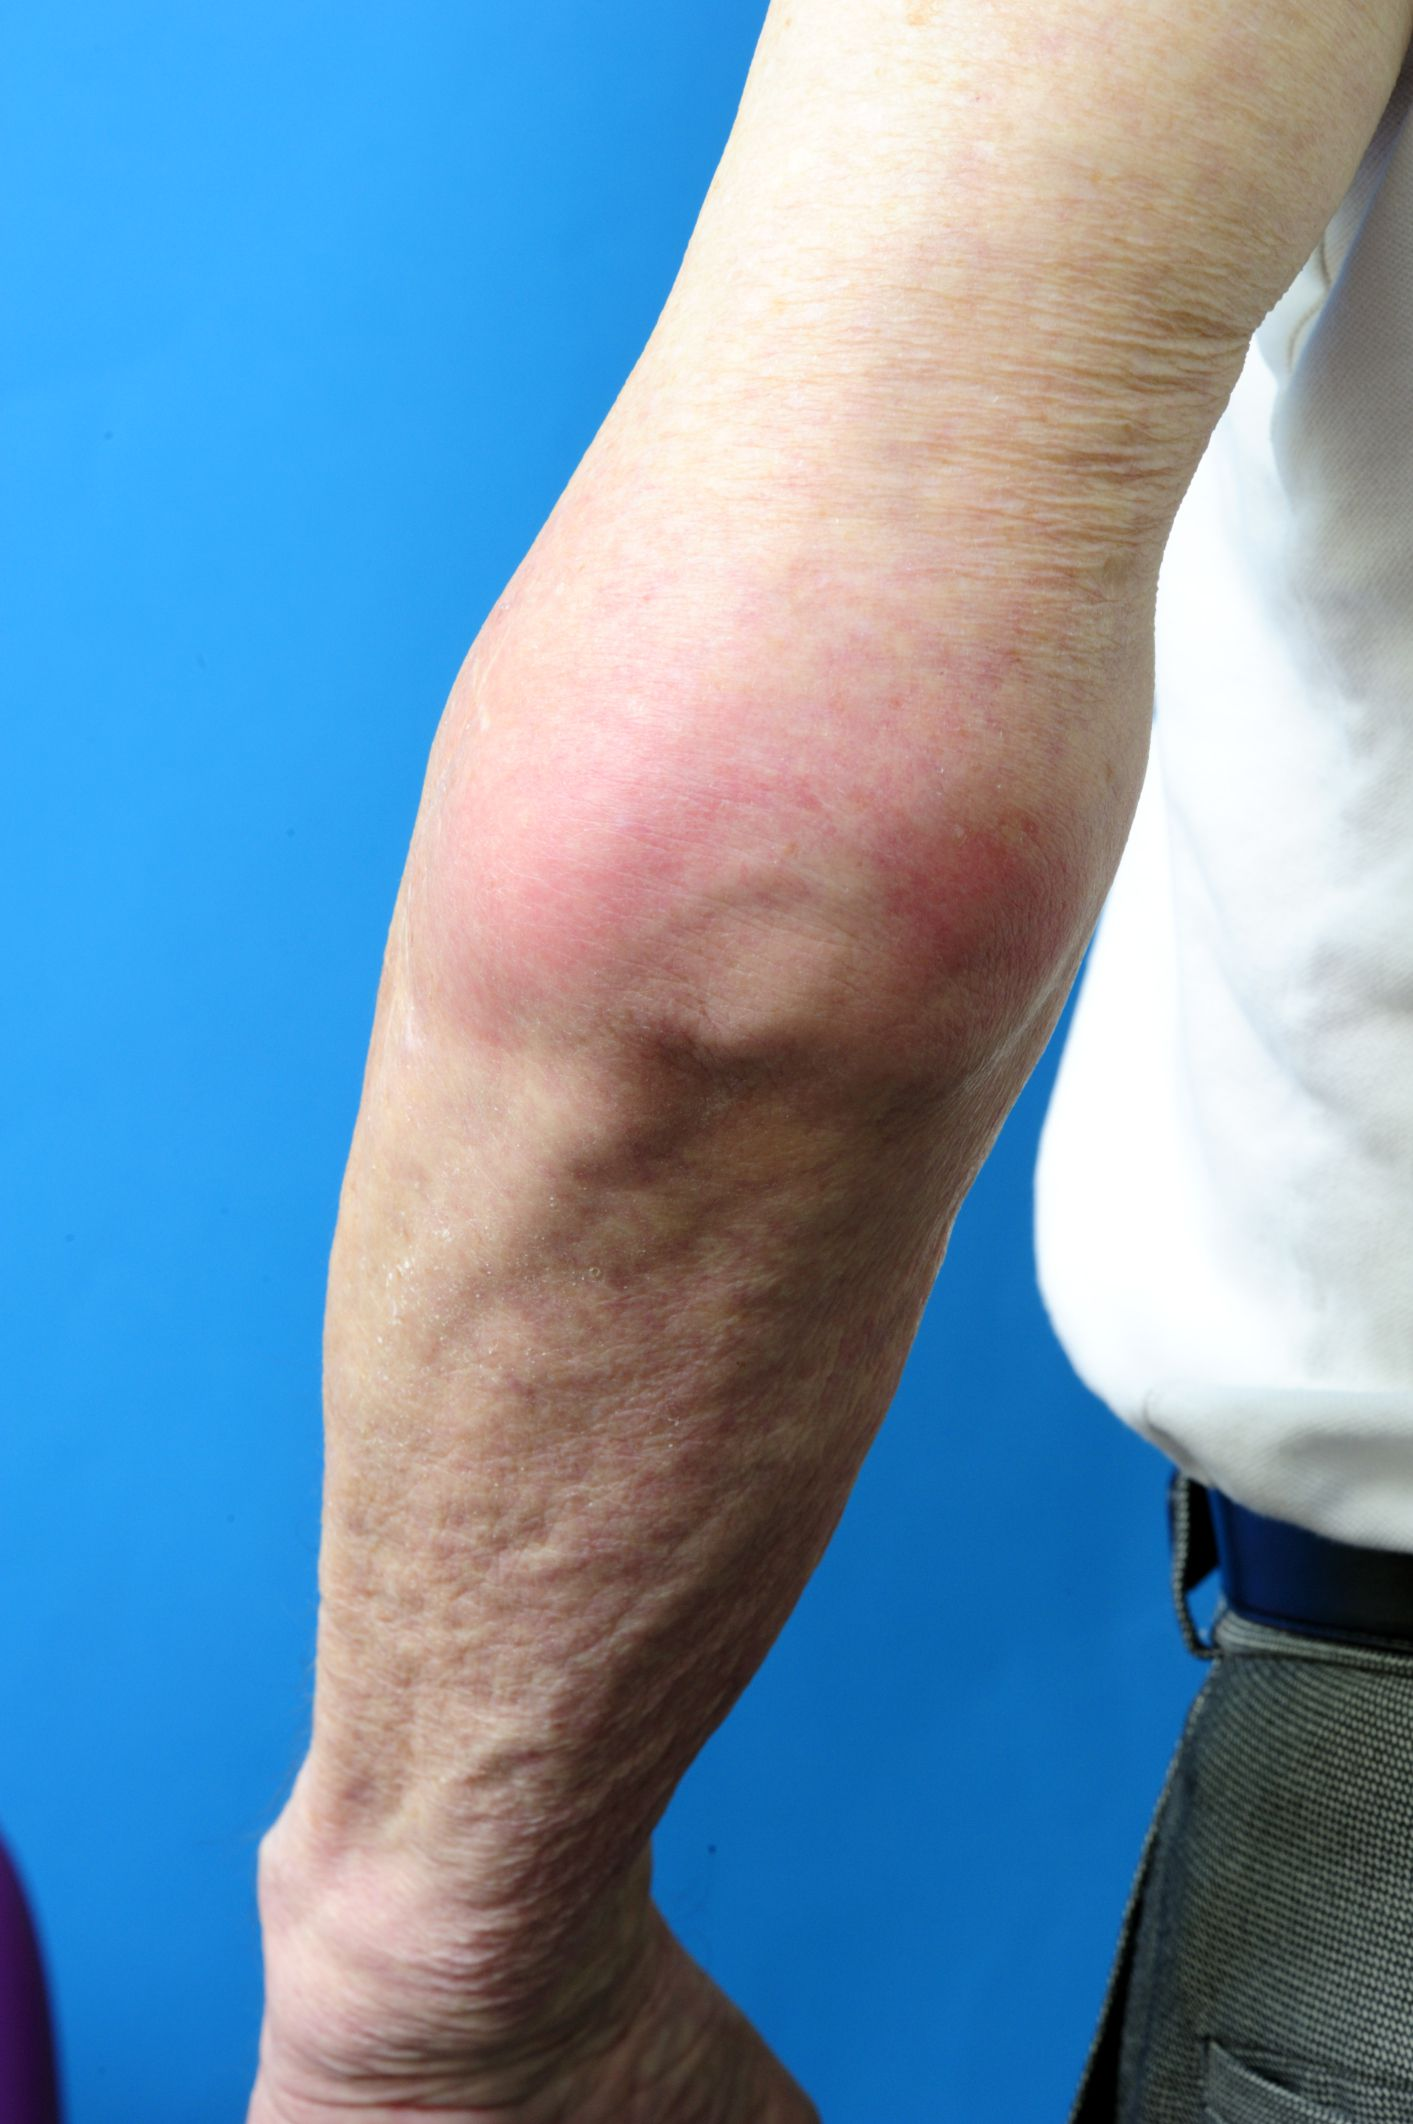 Gout Attack Explained - Causes, Symptoms, and Frequency